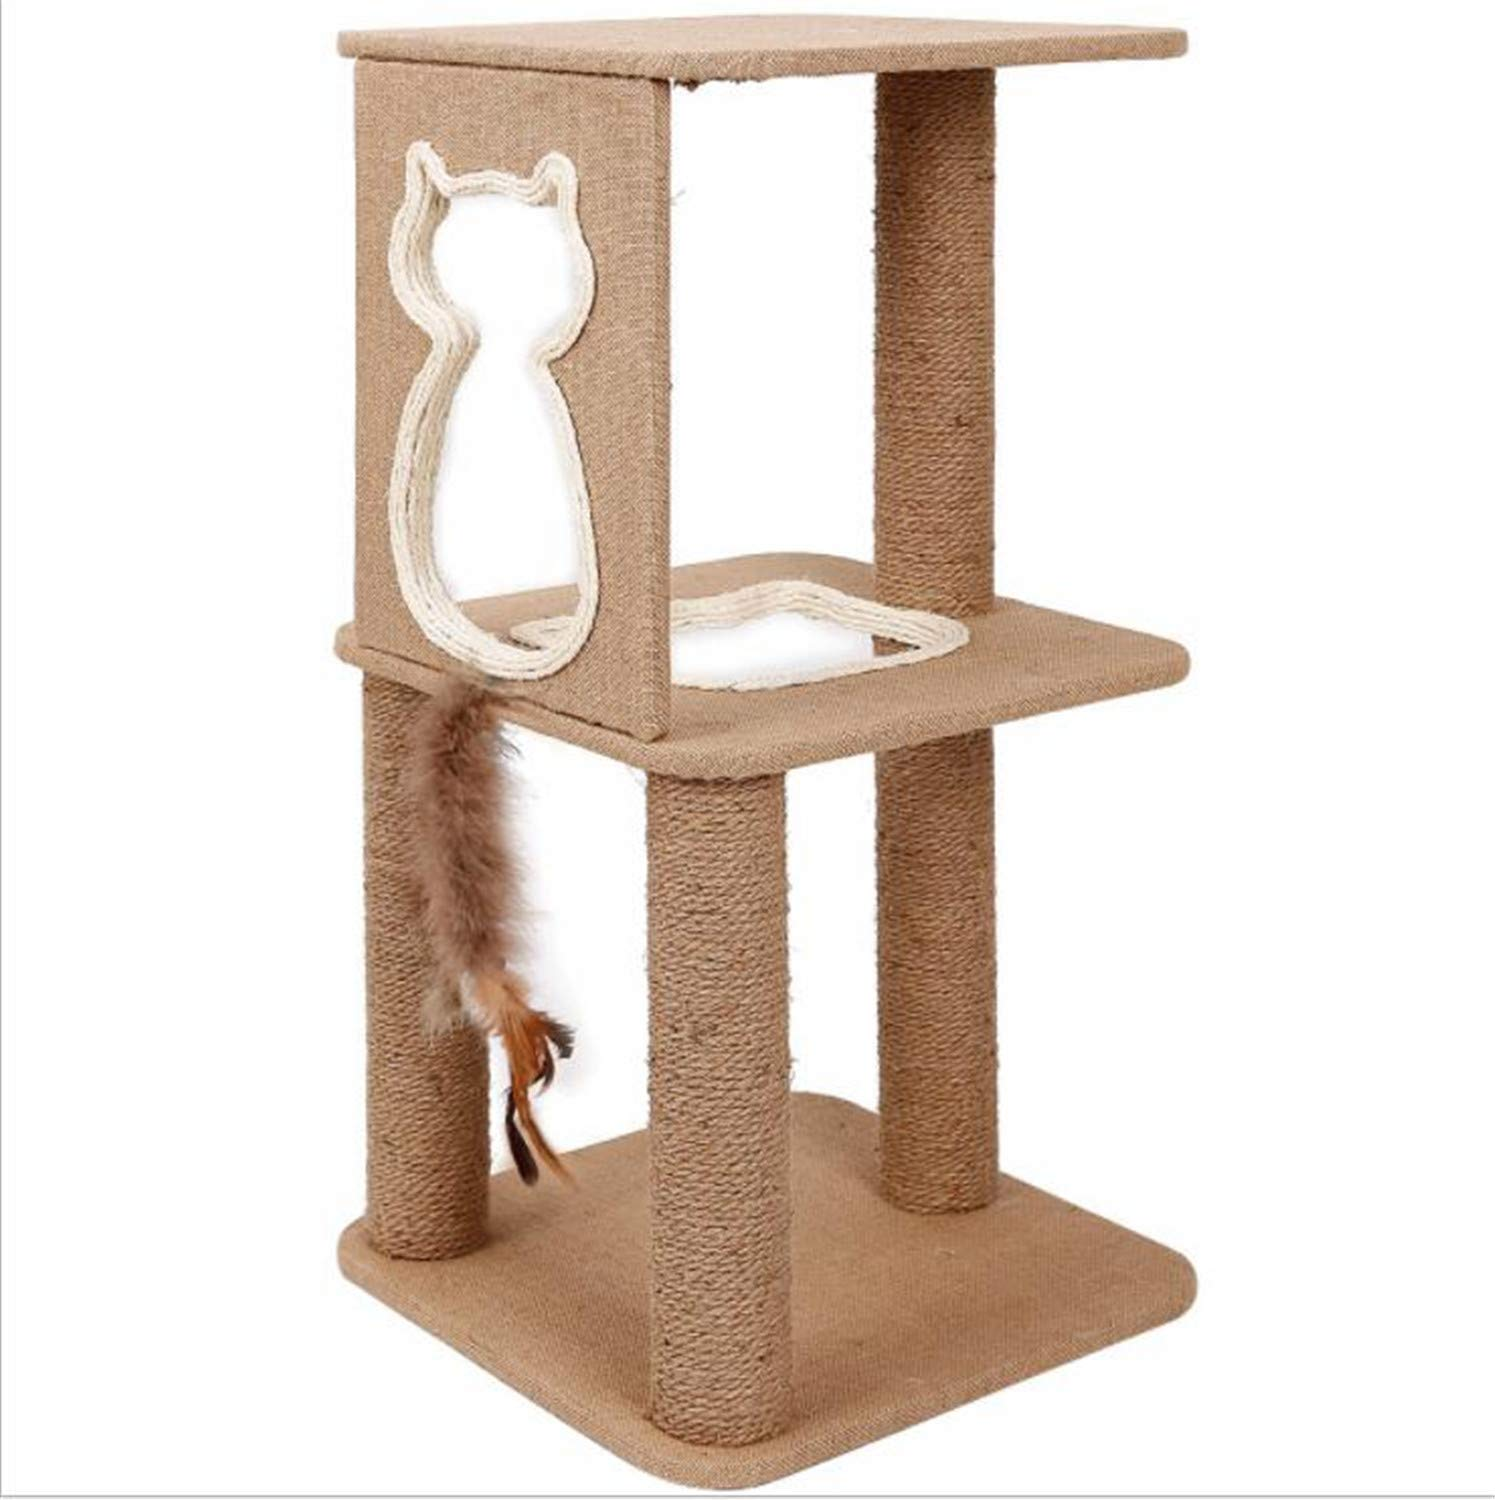 A MR.MO Cat Climbing Frame,Simple Cat Furniture Sleep And Play Sisal Grab Board Nest Double Layer Solid Wood Grinding Paw,funny Toy